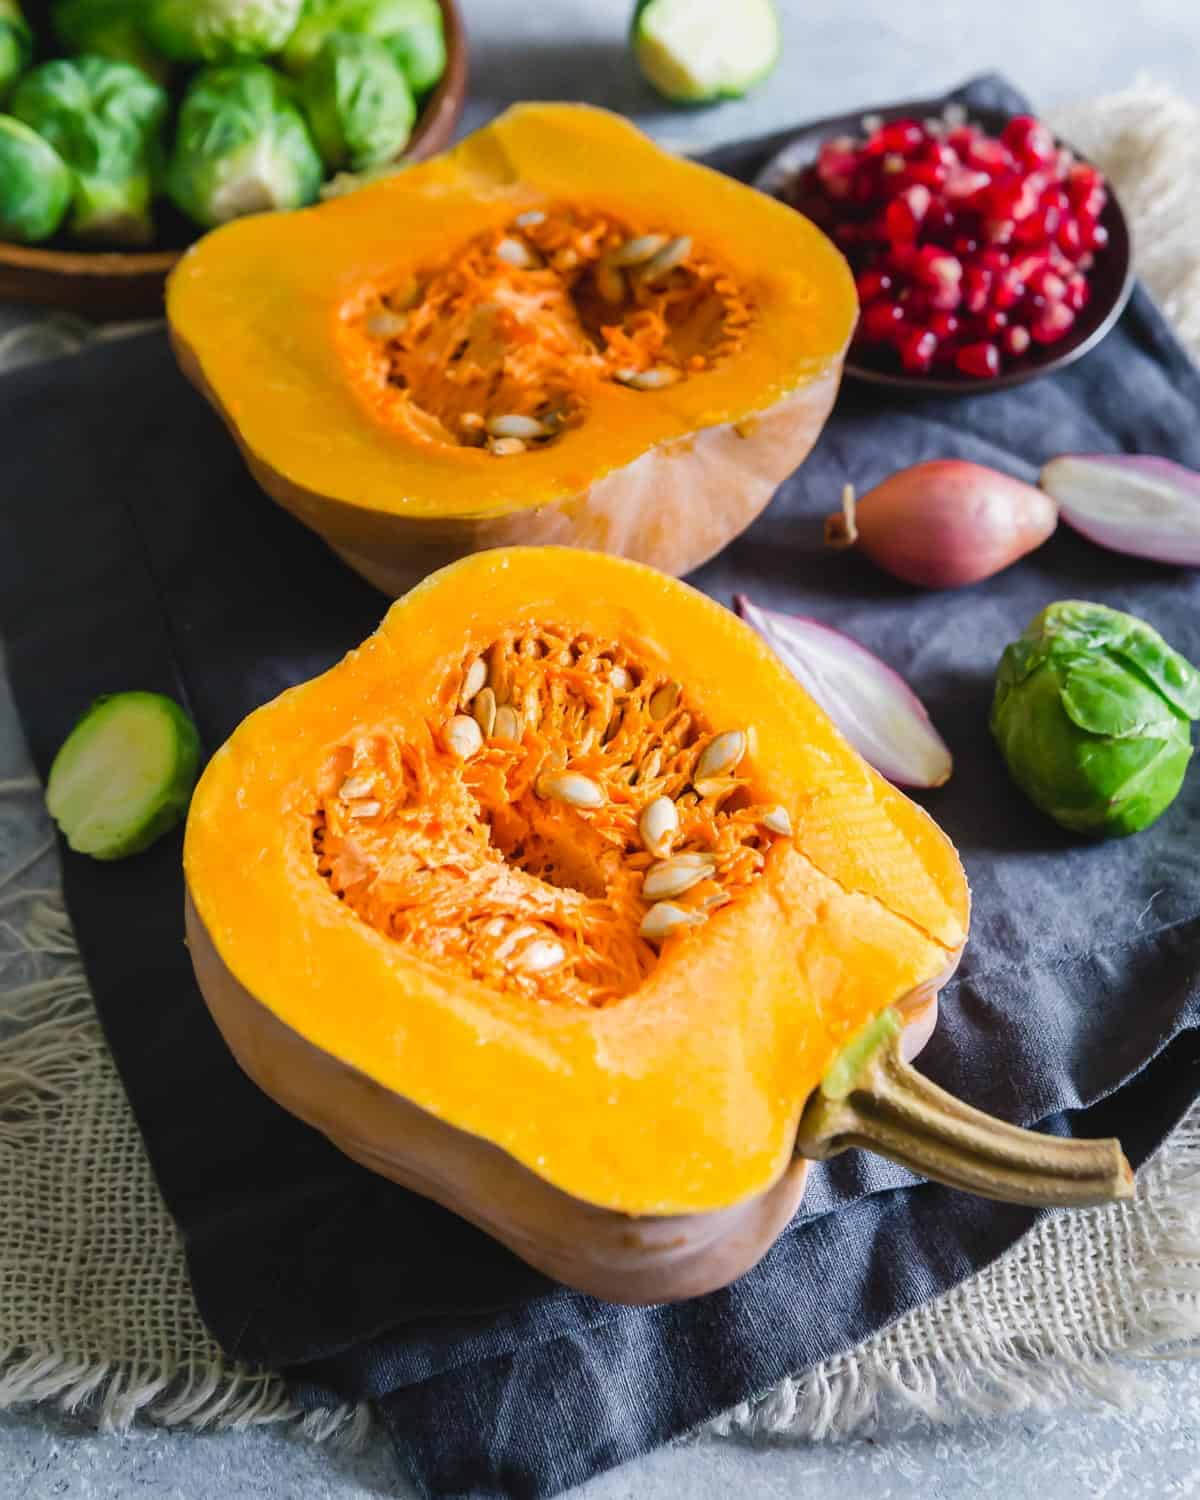 halved koginut squash with seeds